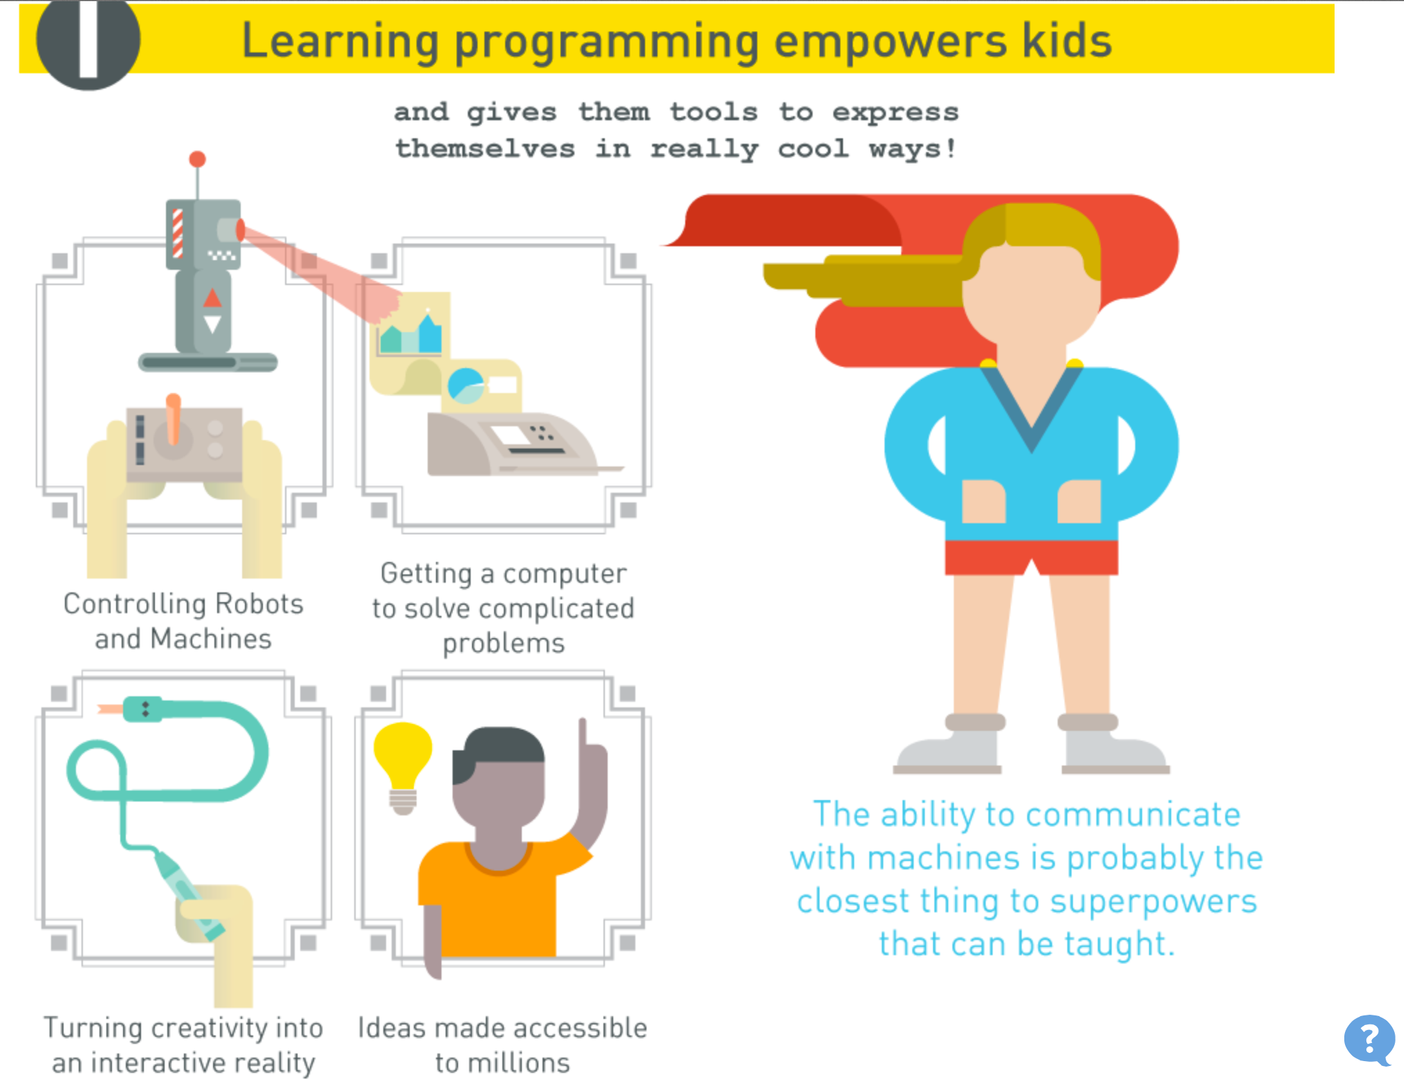 Programming Logo showing a super hero that programs robots and machines.  Empowering students to learn programming in really cool ways.